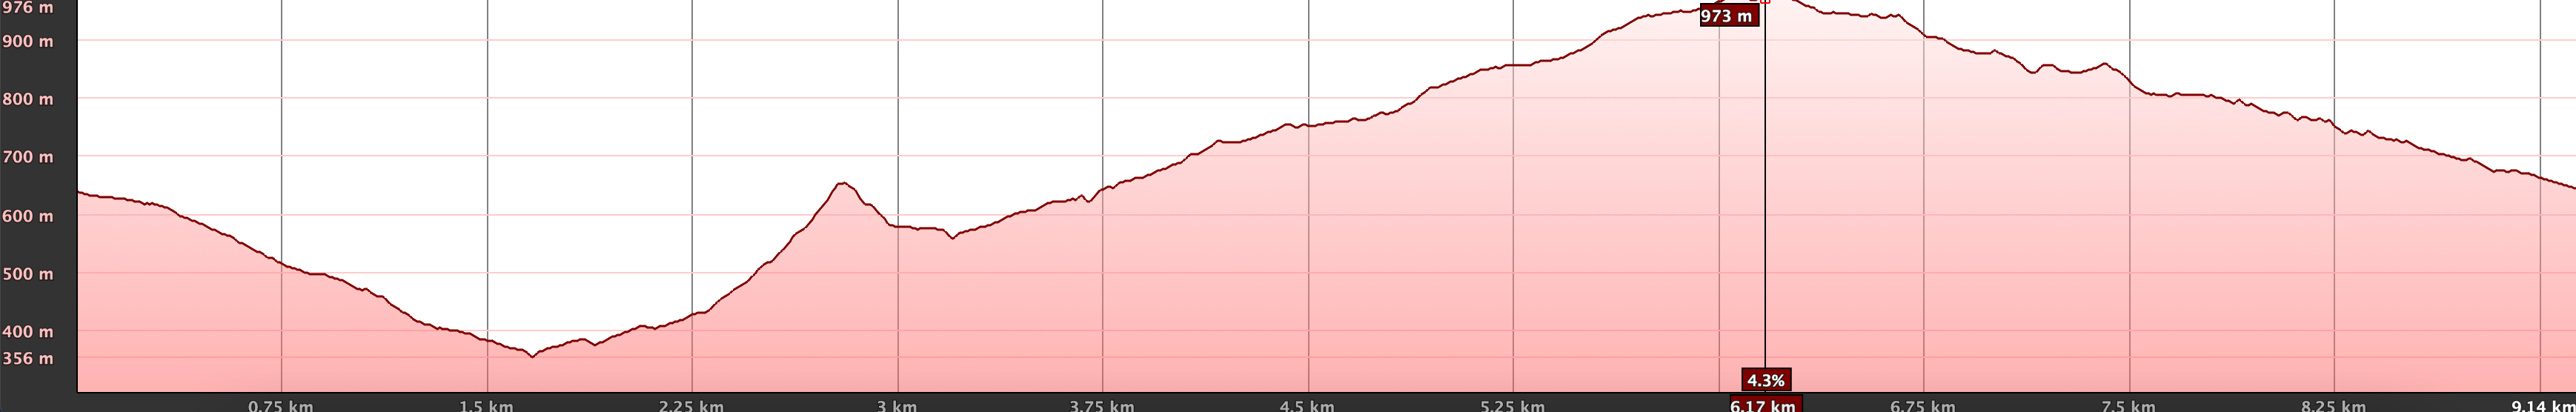 Elevation profile of the Los Carrizales hike